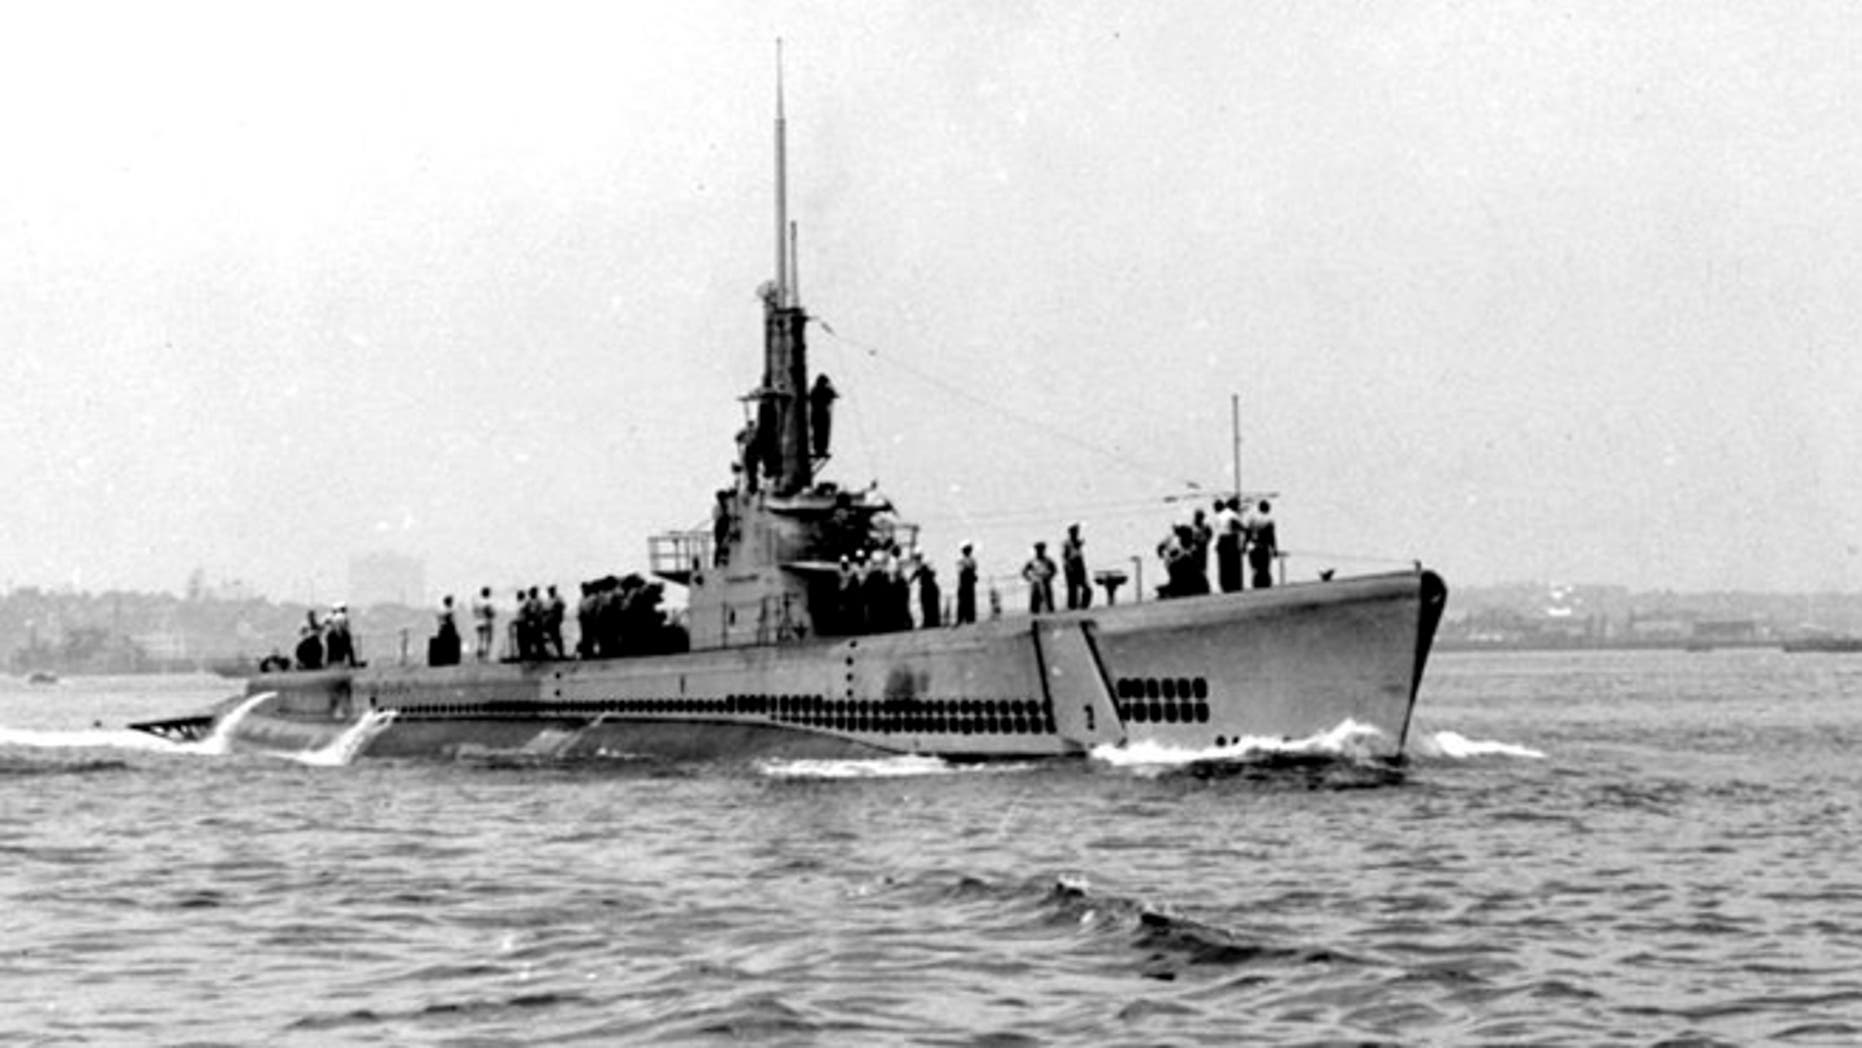 The NJ Naval Museum is home to USS Ling submarine, shown in 1945 photo. (U.S. Navy)